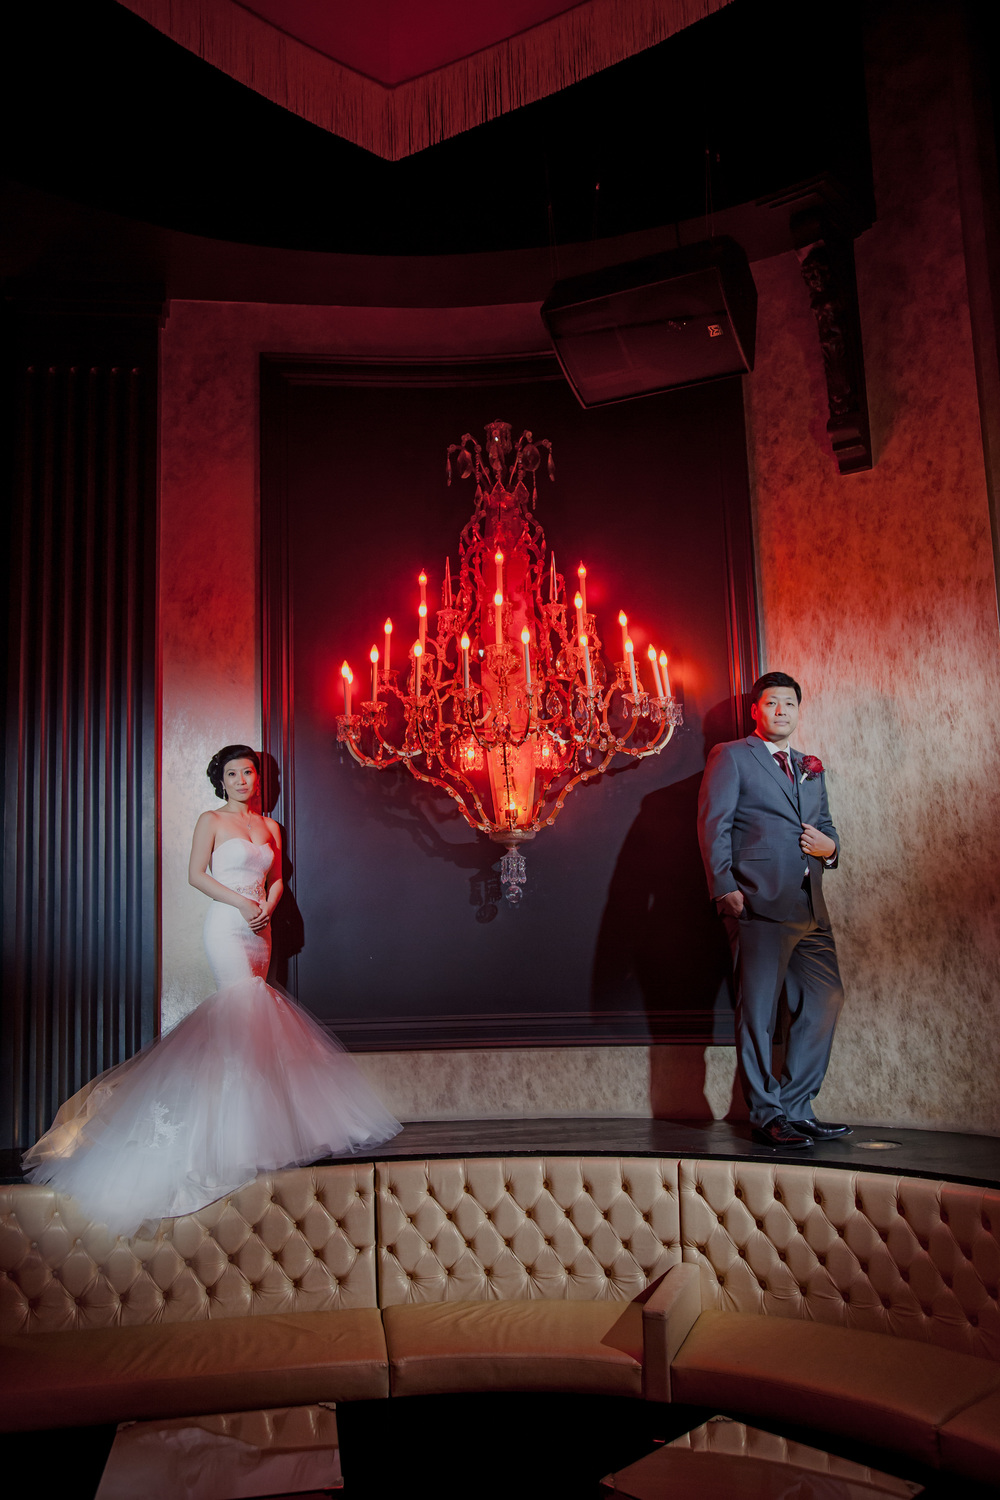 The bride wore a strapless mermaid style satin and tulle gown with beaded belt by Winnie Couture while the groom wore a grey Hugo Boss Suit.  The red chandelier was a perfect prop for modern wedding portraits.  Vendor Credit:  Venue: Paris Hotel Las Vegas and Chateau | Las Vegas Wedding Planner Andrea Eppolito | Photo: Adam Frazier Photography | Decor: Naakiti Floral | Beauty: Make Up in the 702